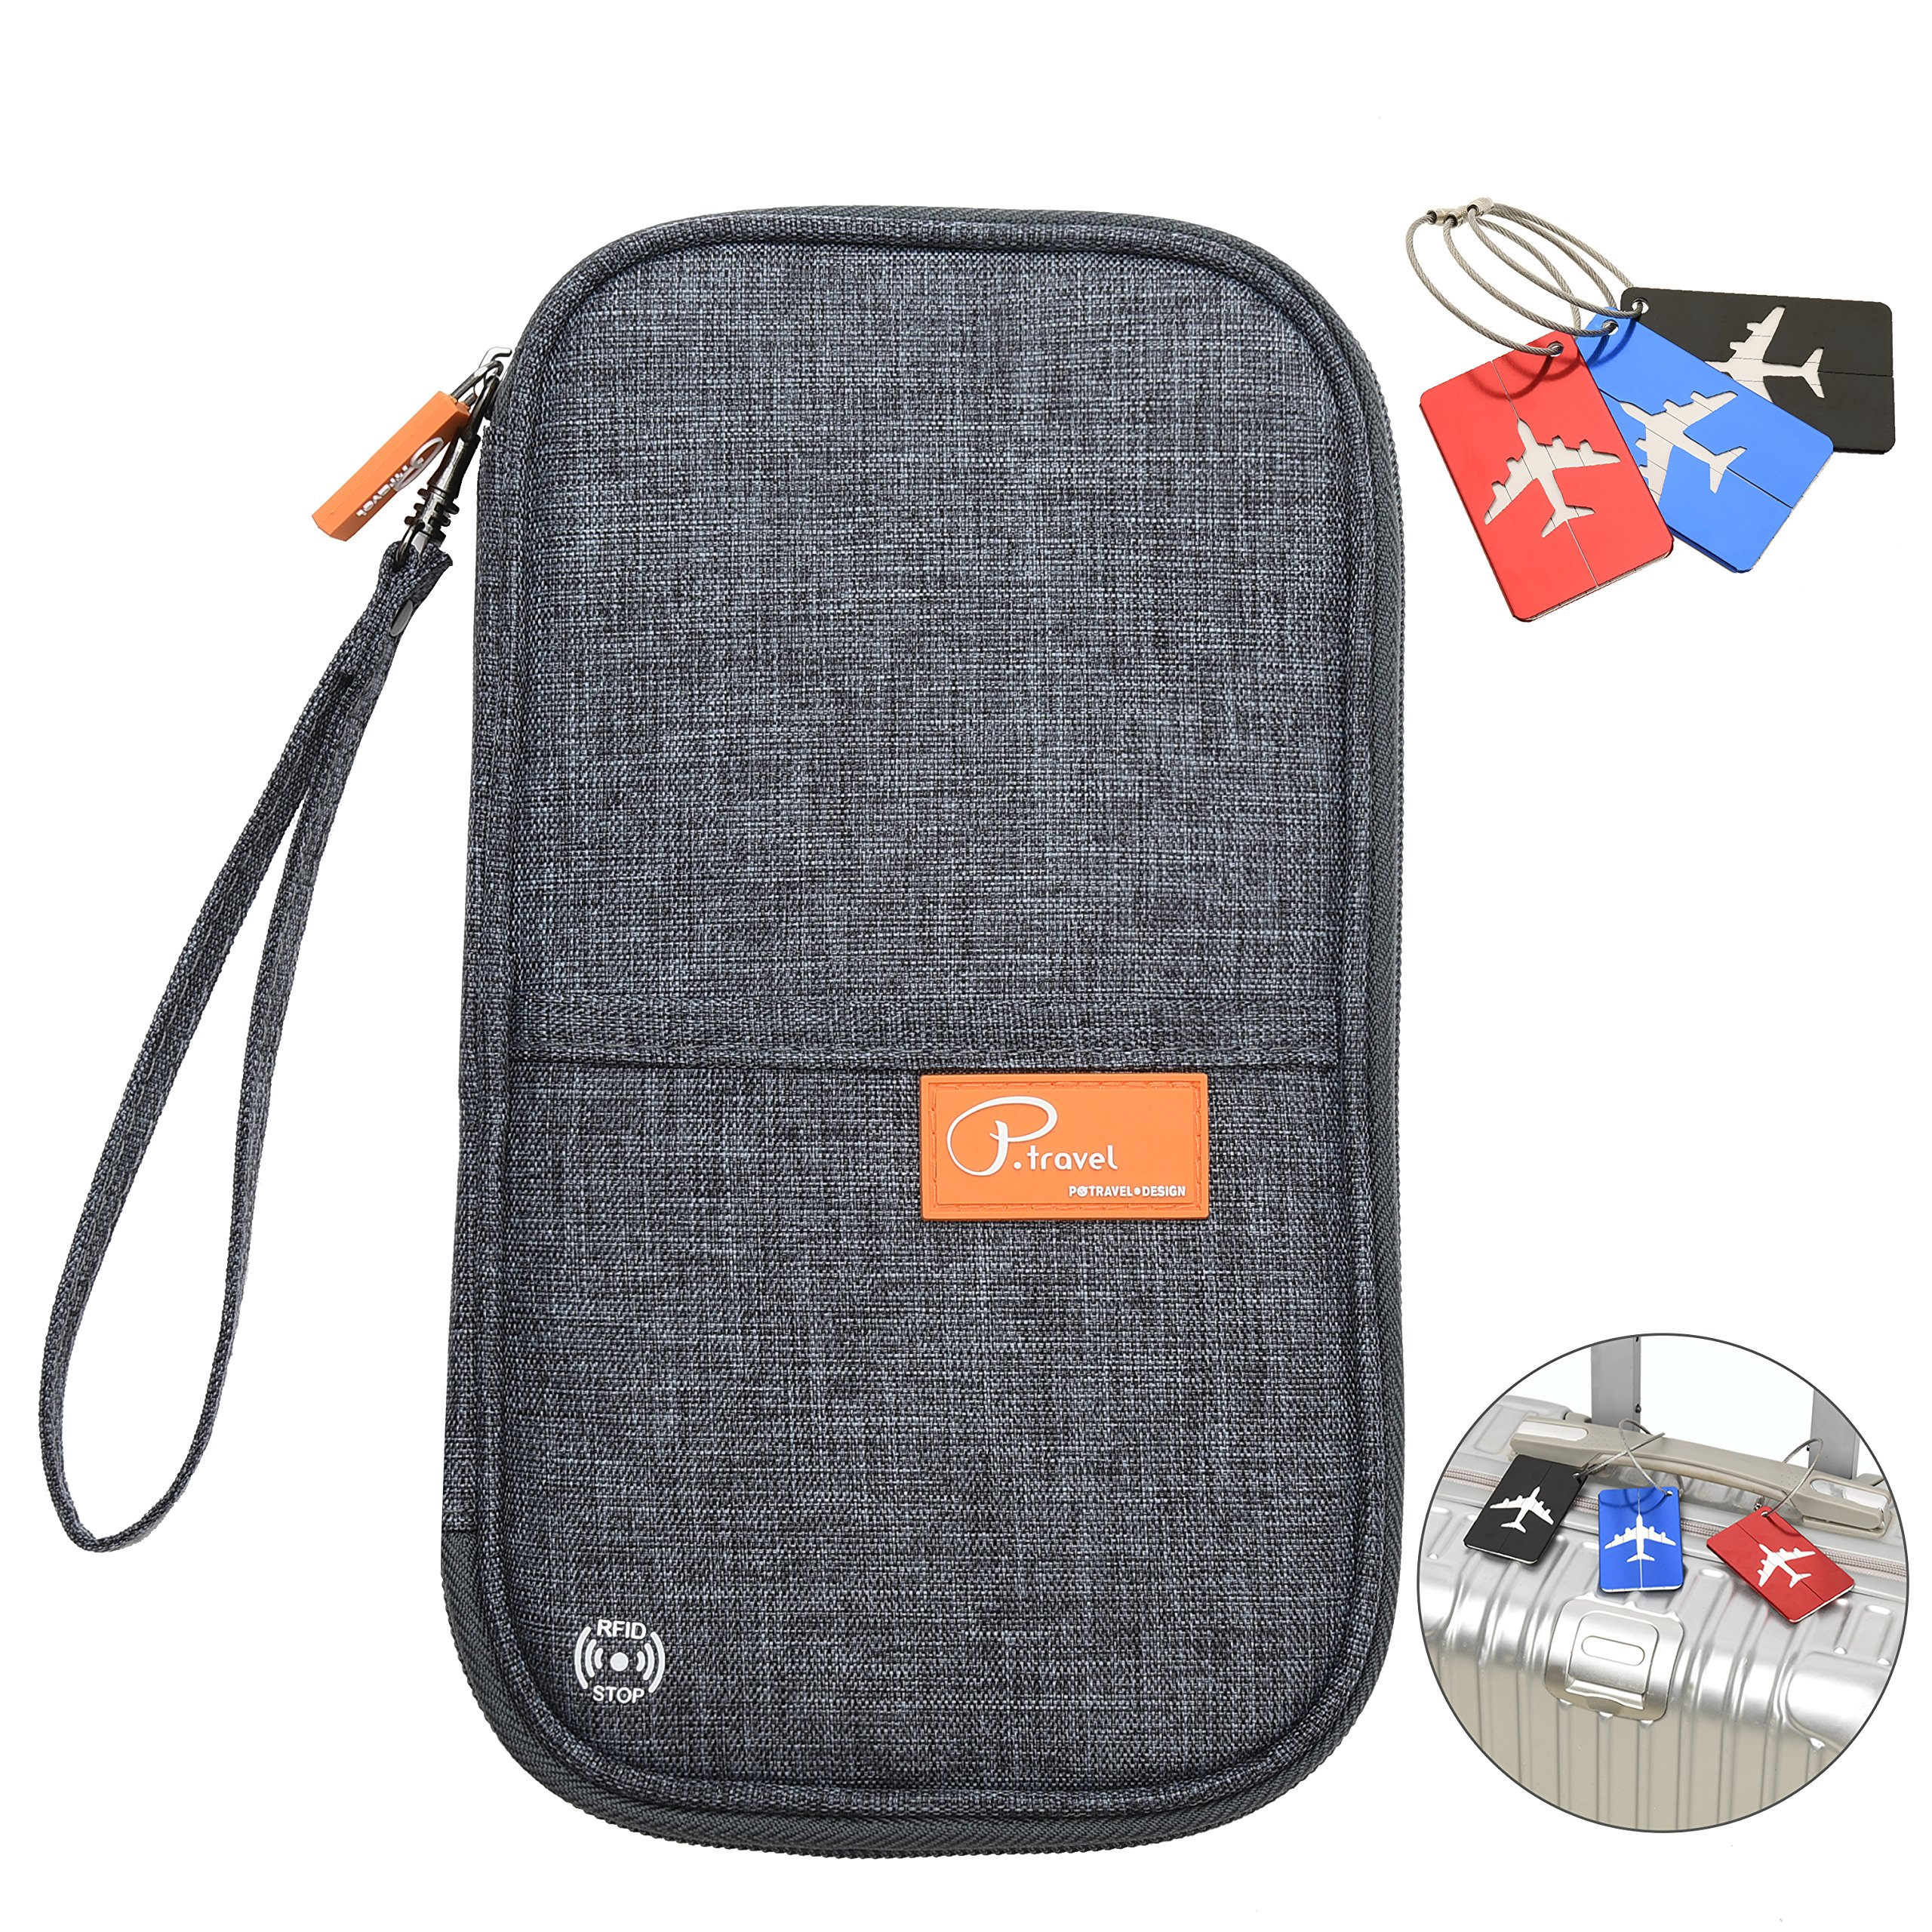 RFID Blocking Travel Passport Wallet Family Passport Holder Credit Card Ticket Document Organizer Bag with 3pcs luggage Tags (Grey)